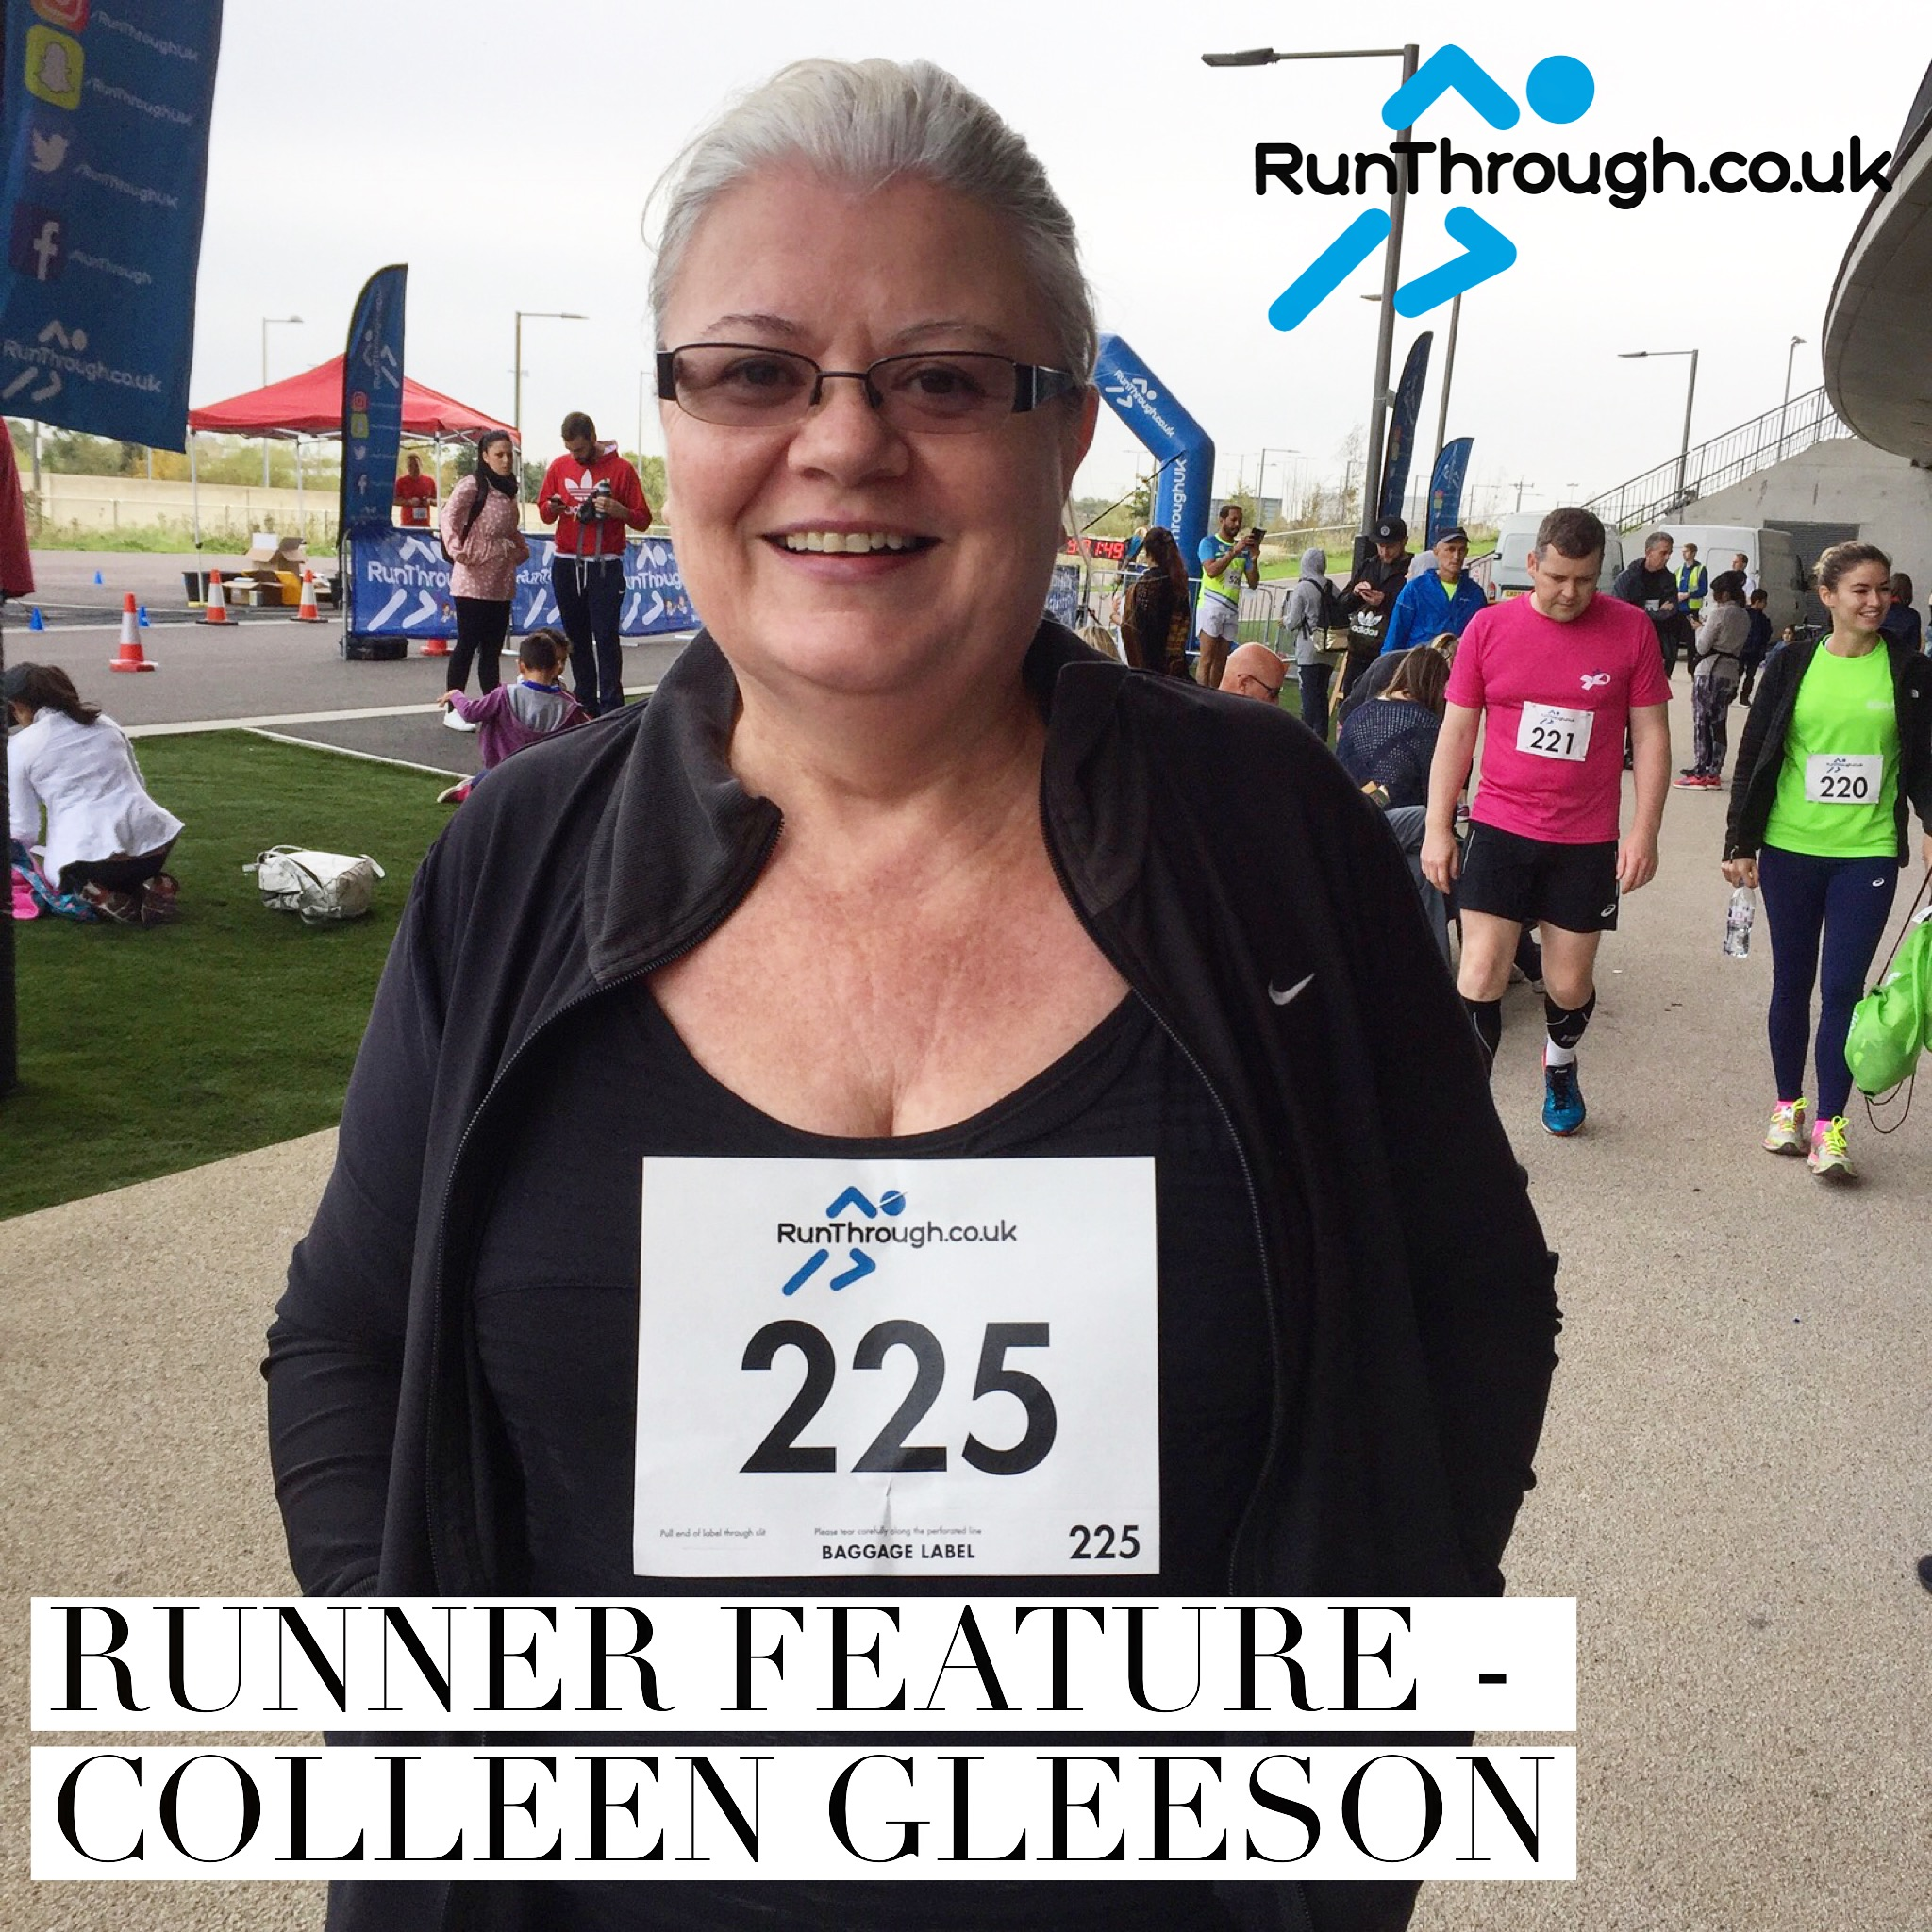 Runner Feature – Colleen Gleeson